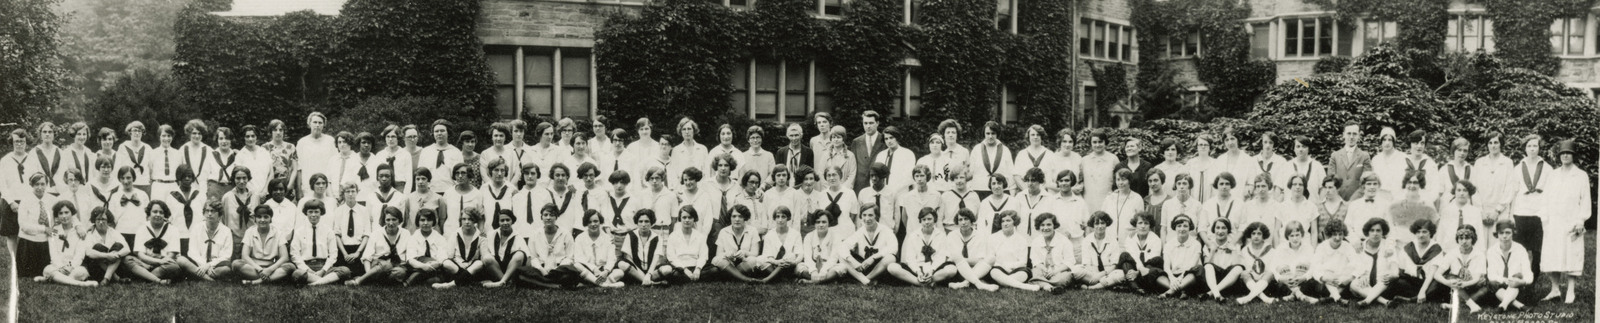 http://brynmawrcollections.org/Images/SSWWI_OS_001_BMC_f.jpg